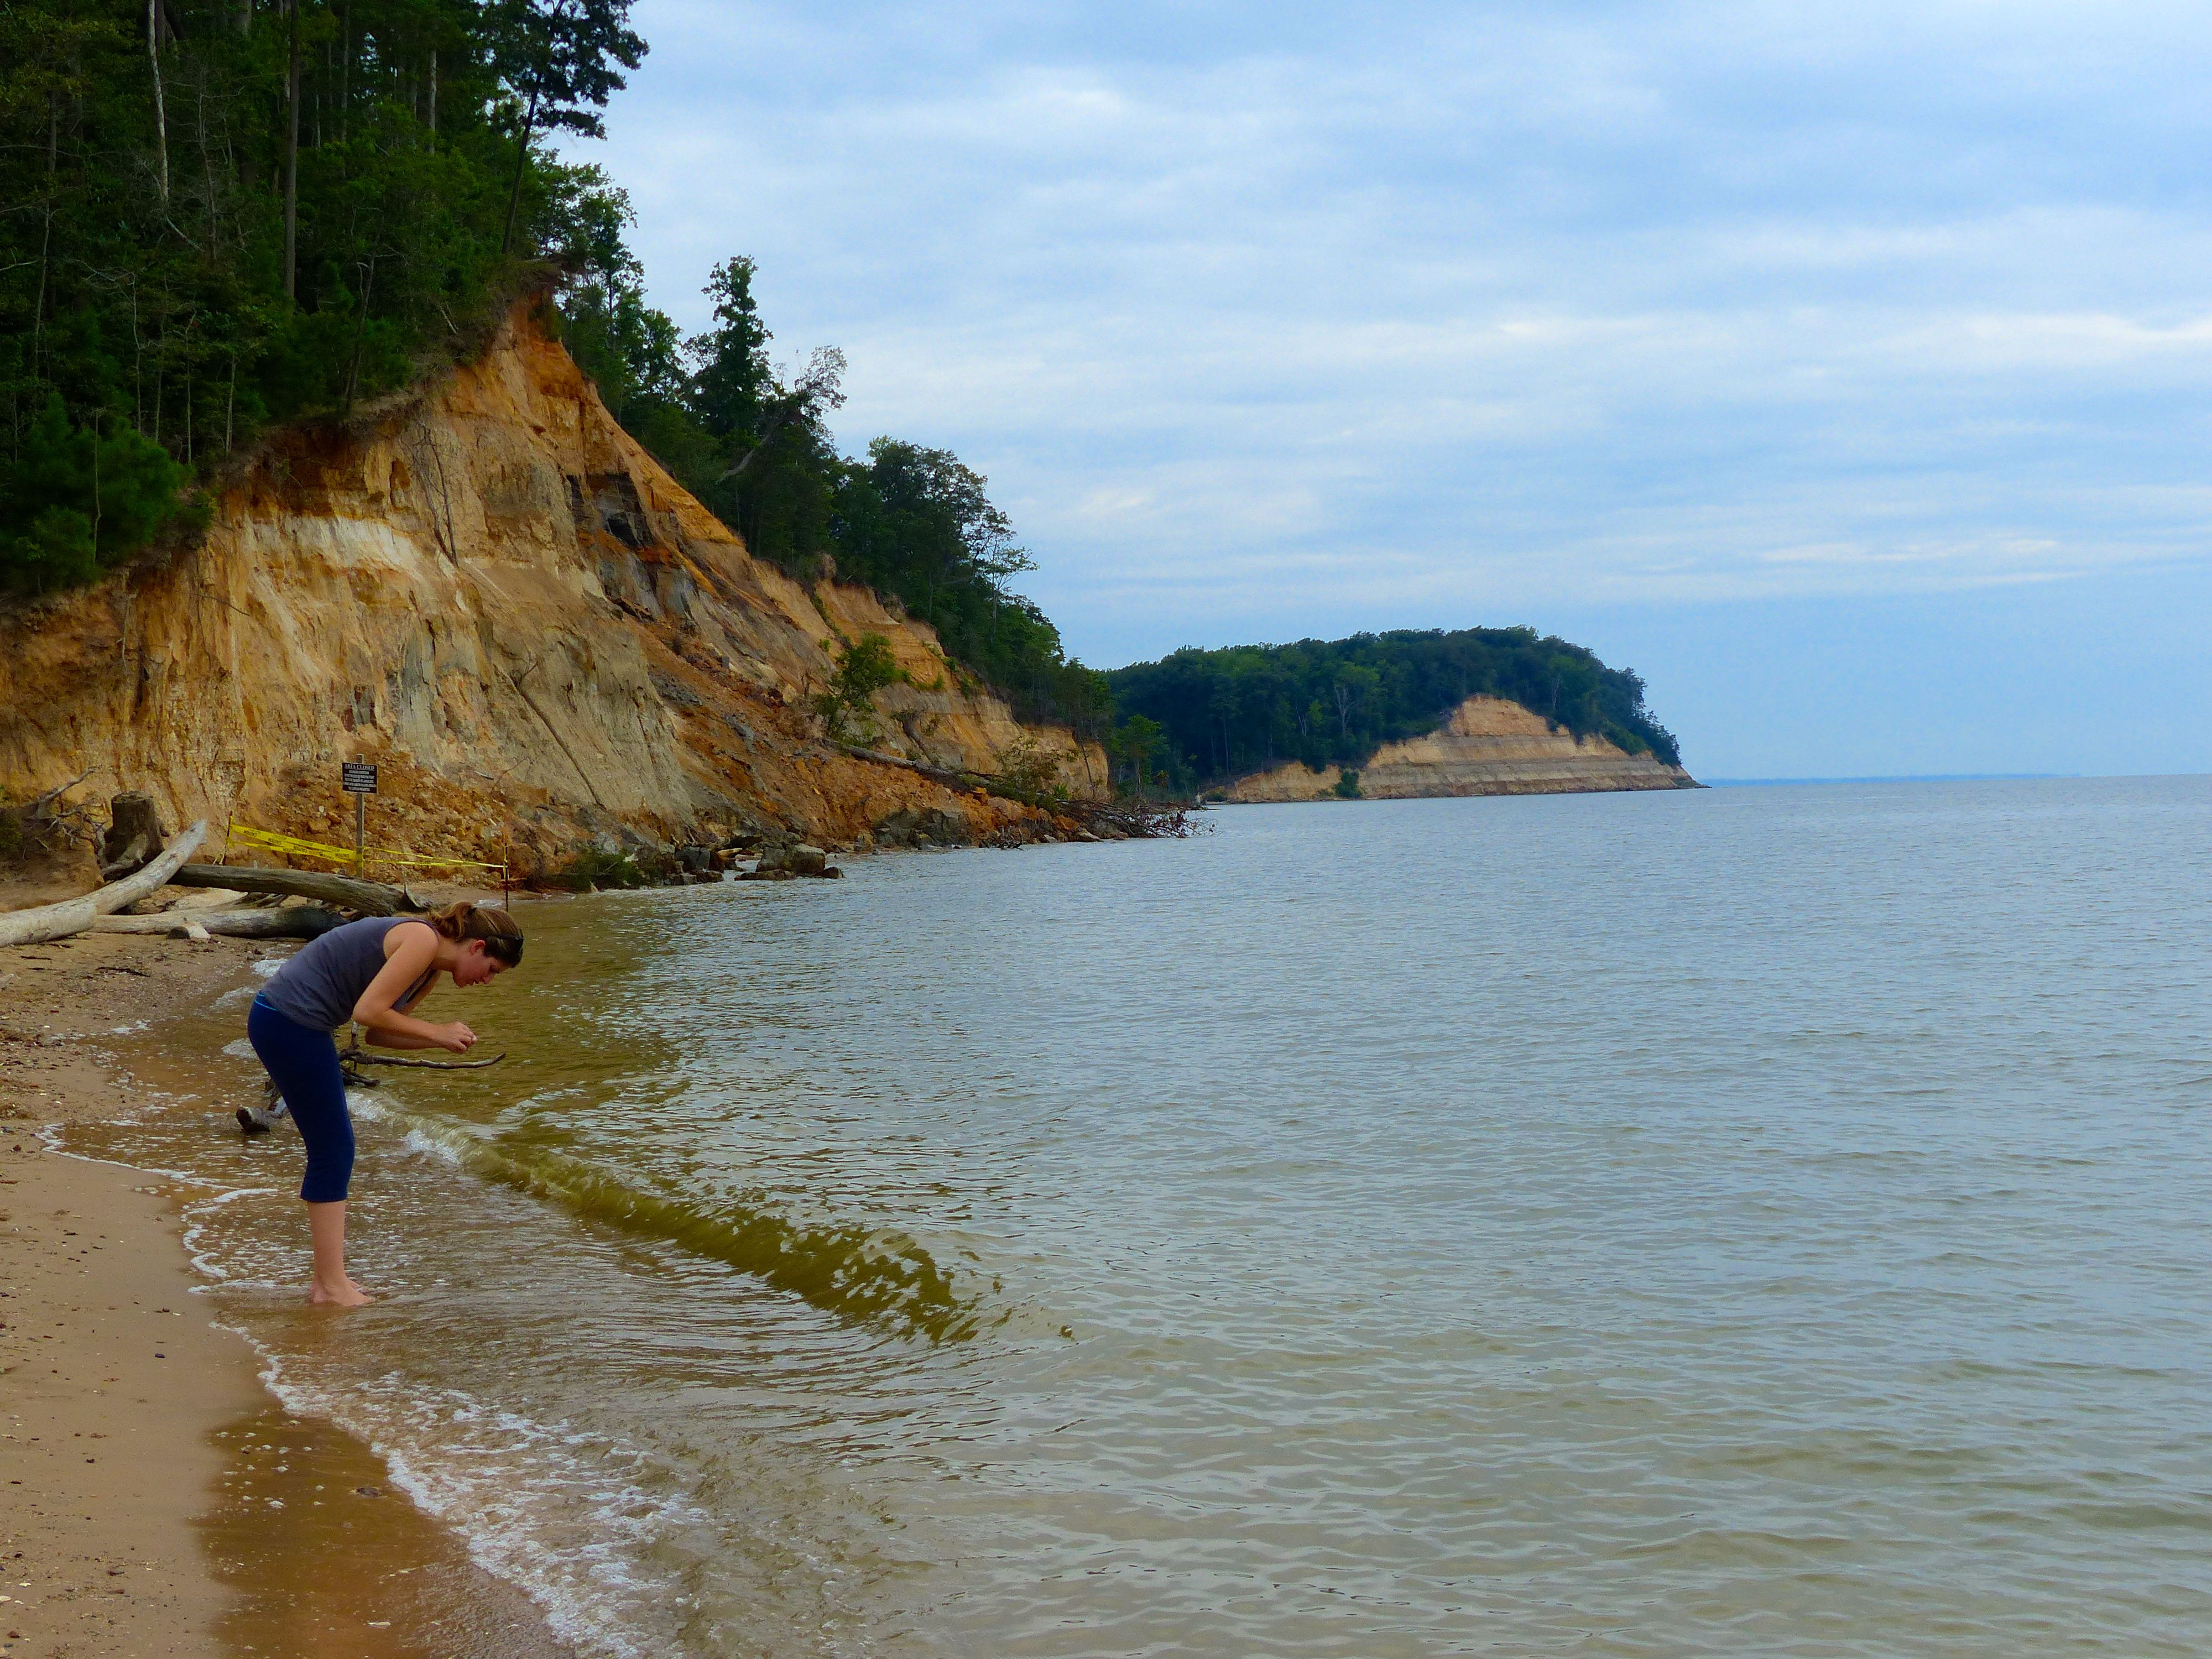 Calvert Cliffs Fossil Hunting Growing Up I Visited Maryland S County Beaches